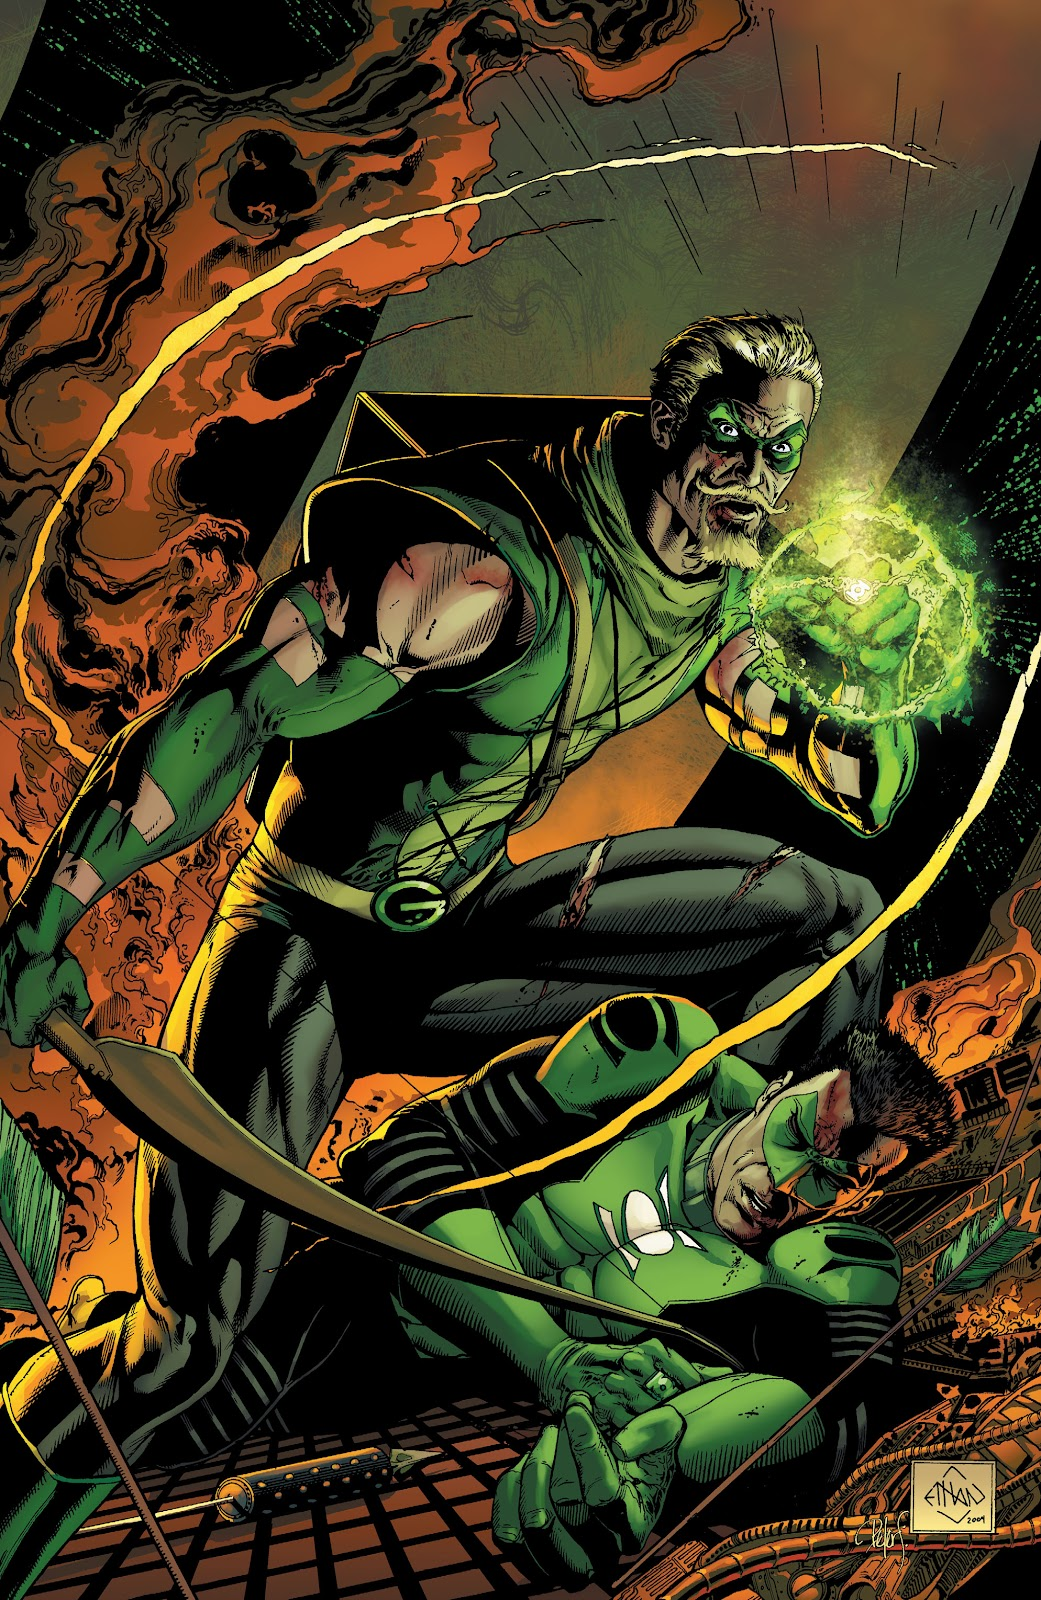 Read online Green Lantern by Geoff Johns comic -  Issue # TPB 1 (Part 1) - 89